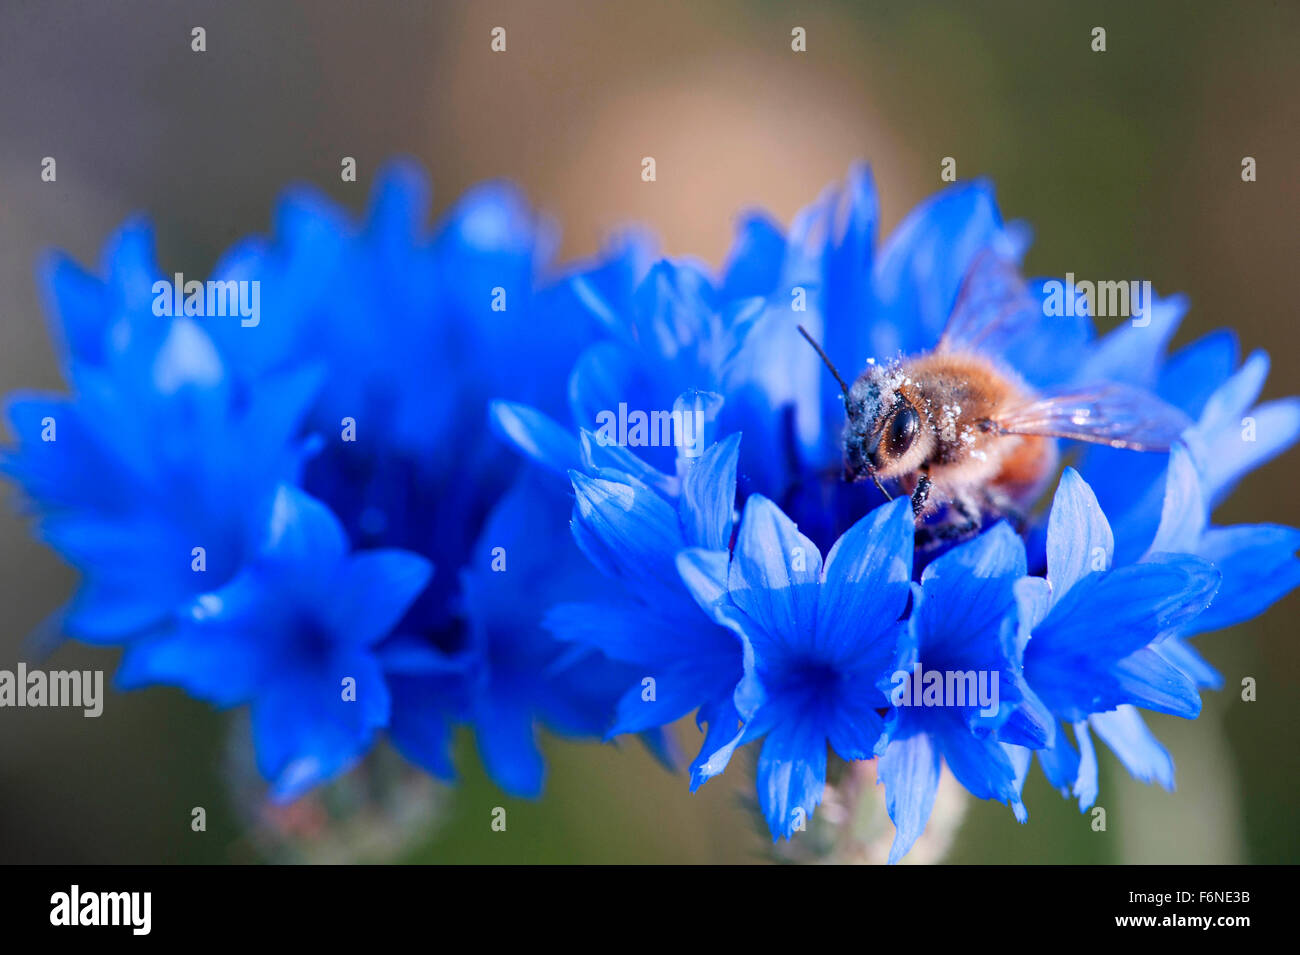 Bachelor button flower, himachal pradesh, india, asia - Stock Image